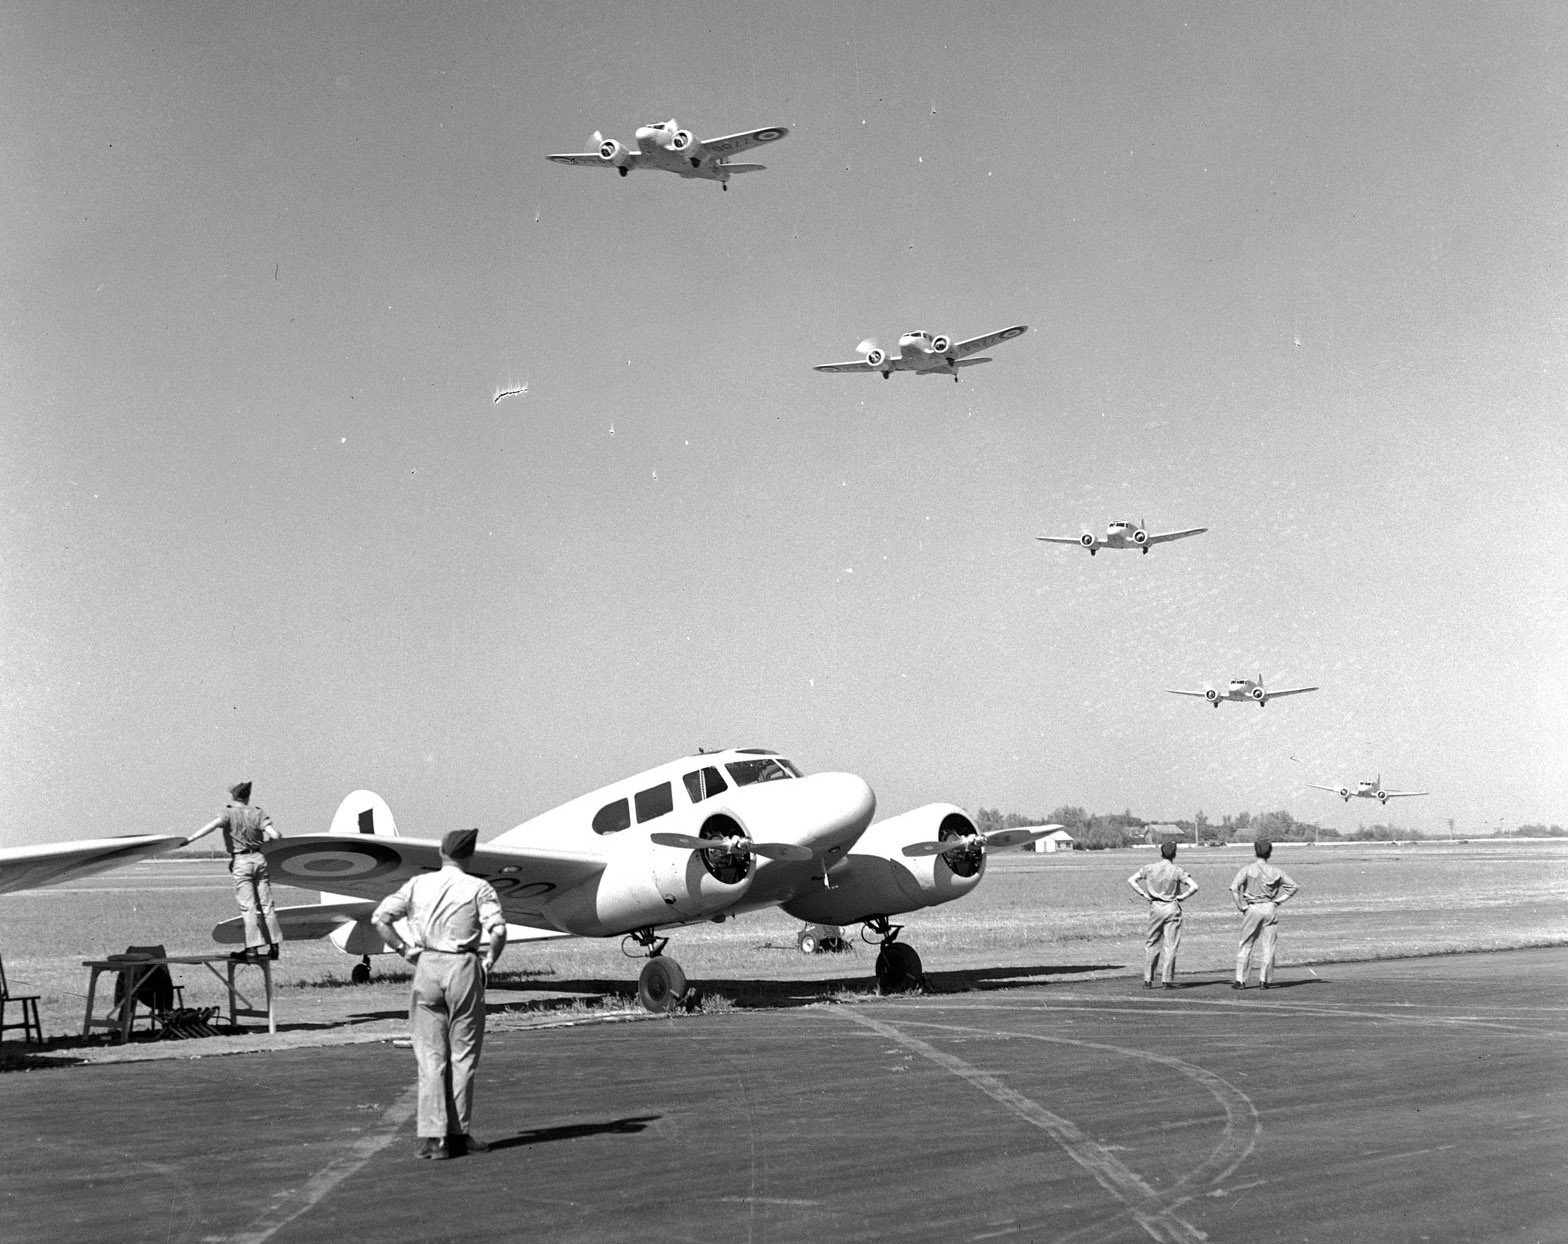 In perfect formation, five Cessna Cranes of the Royal Canadian Air Force fly over their airfield, where one Crane rests on the ground, during training on July 19, 1941. These twin-engine planes are used to train bomber pilots for their overseas jobs against the Axis. PHOTO: DND Archives, PL-5747